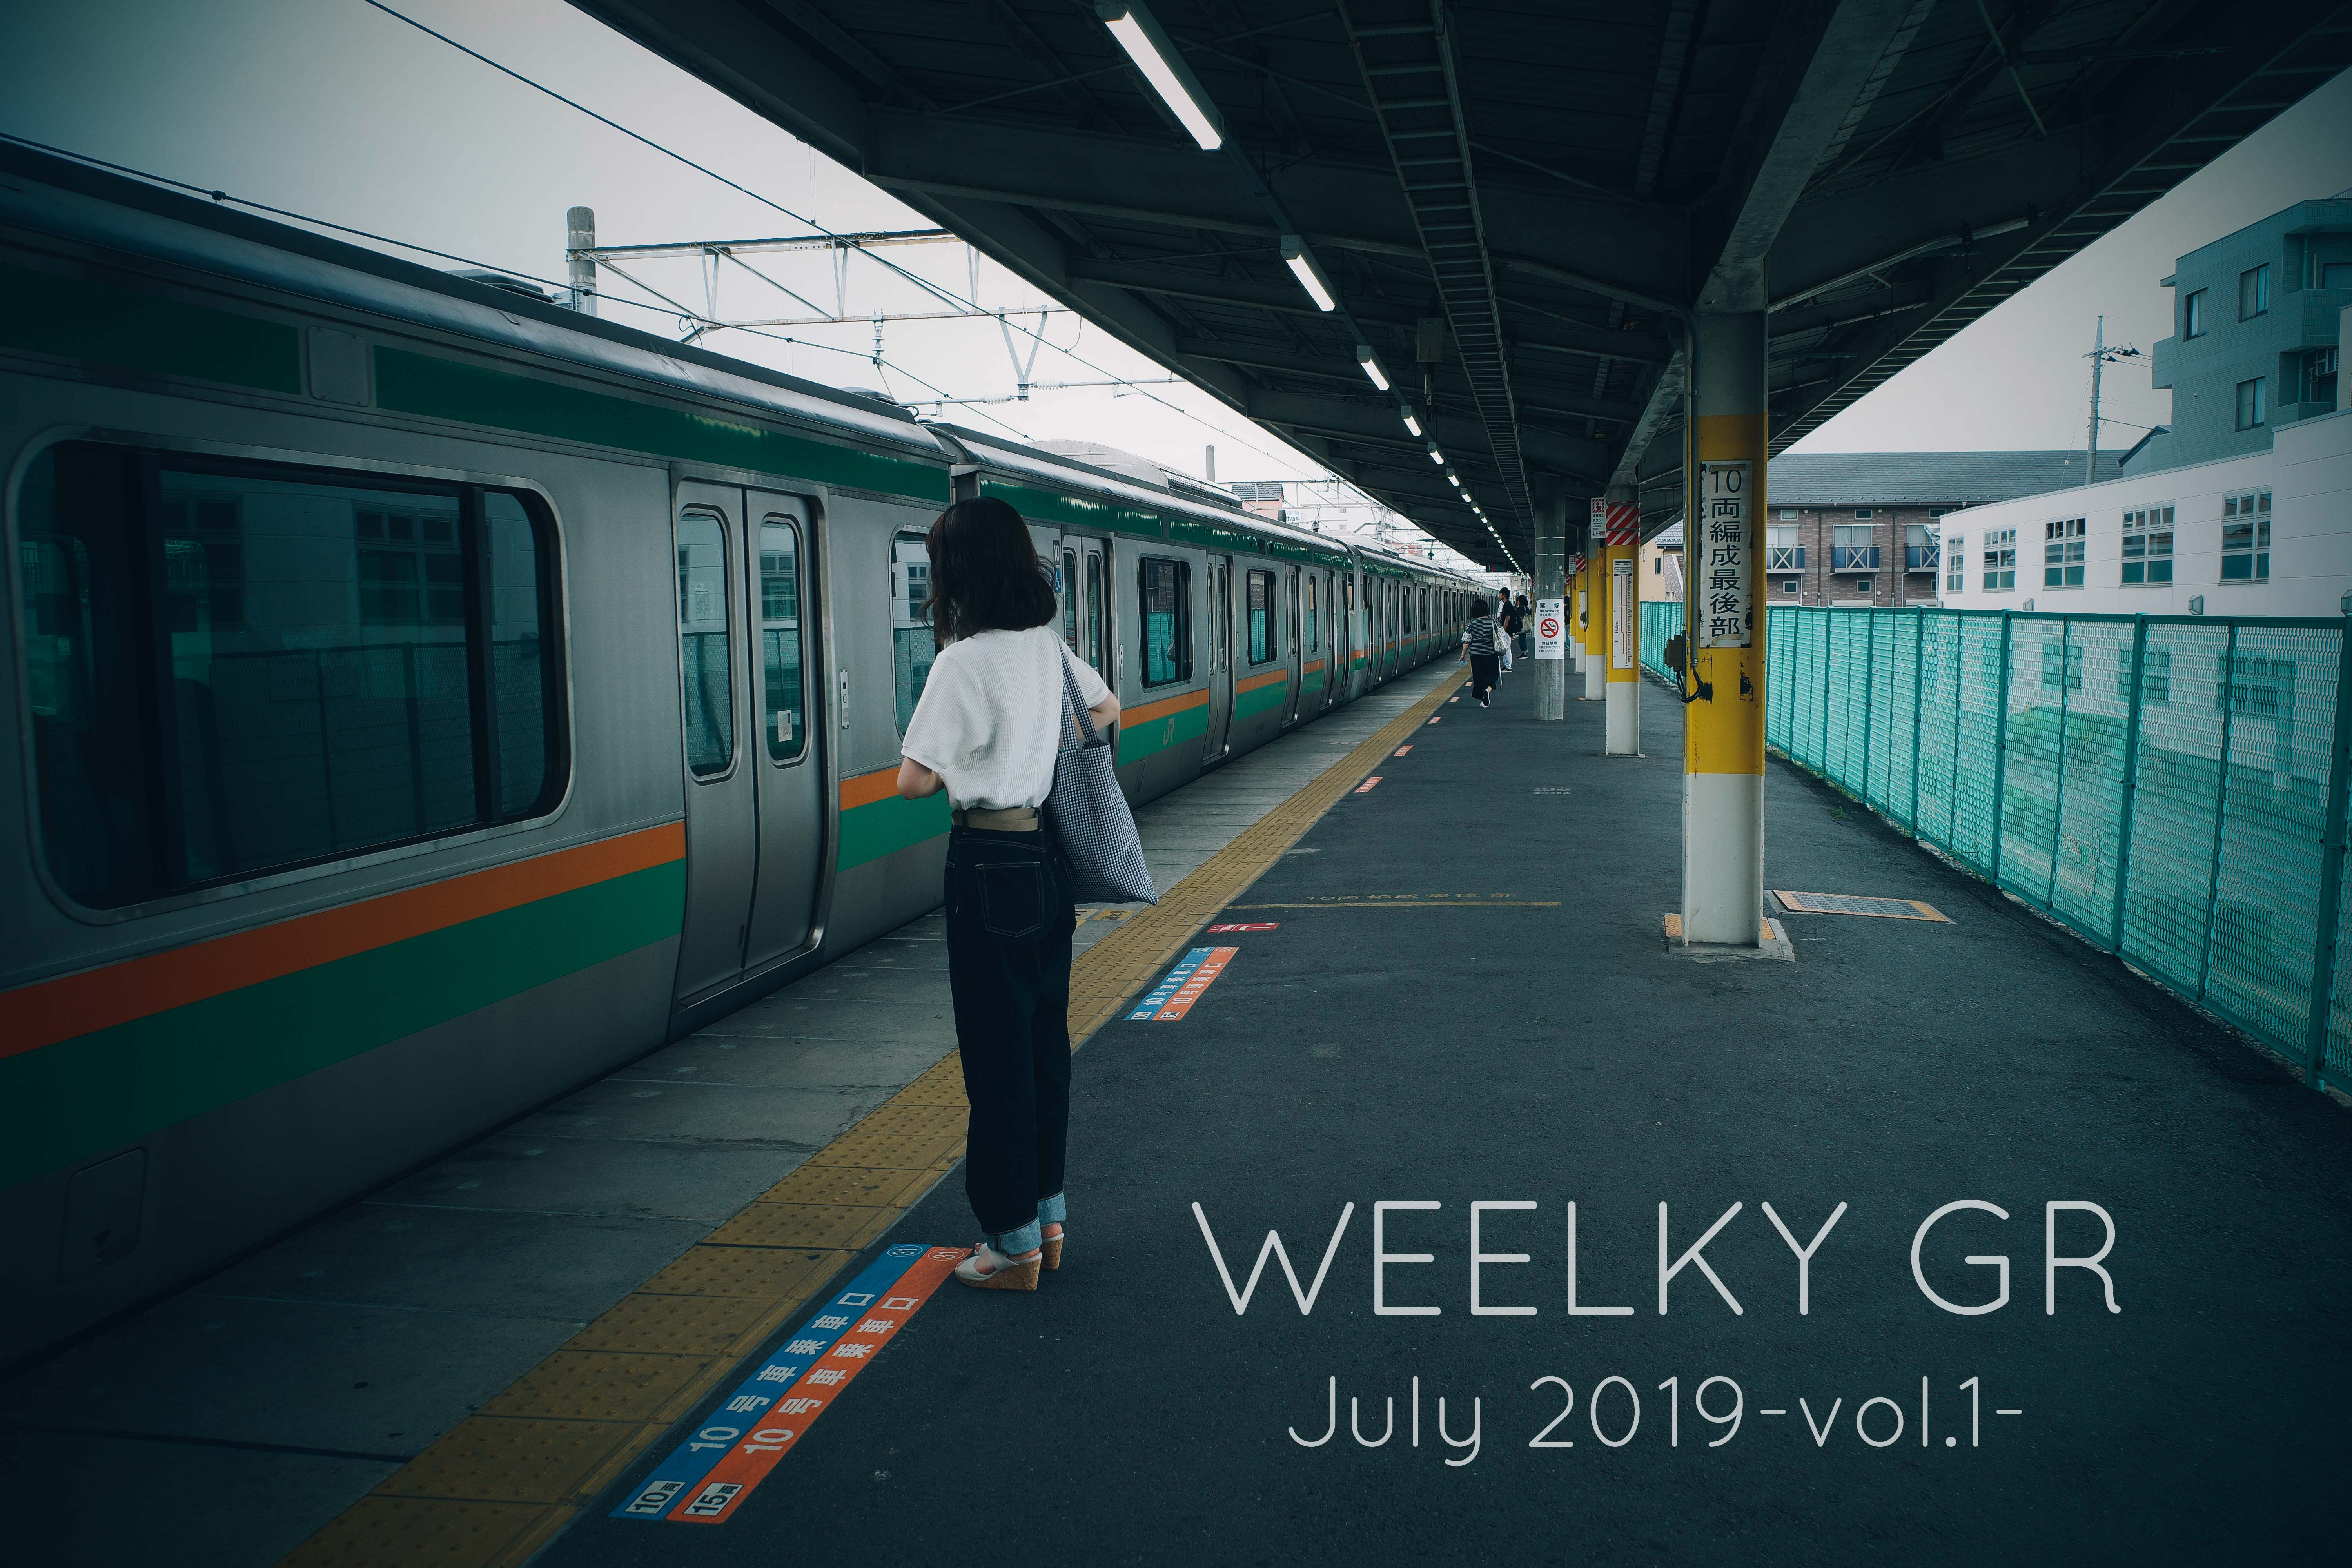 WEELKY GR|July 2019-Vol.1-